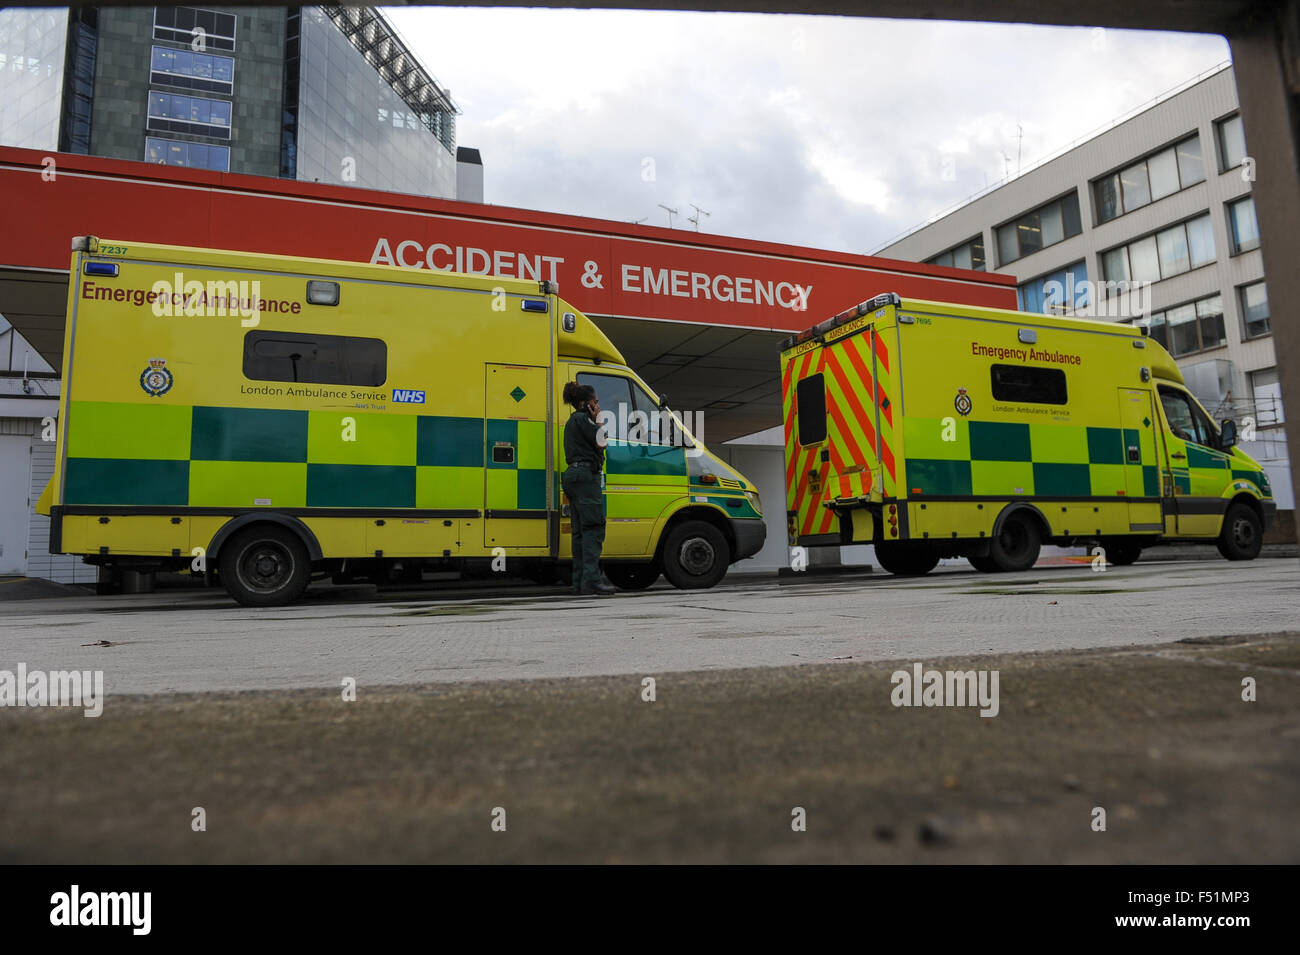 Accident and emergency St Thomas hospital London - Stock Image